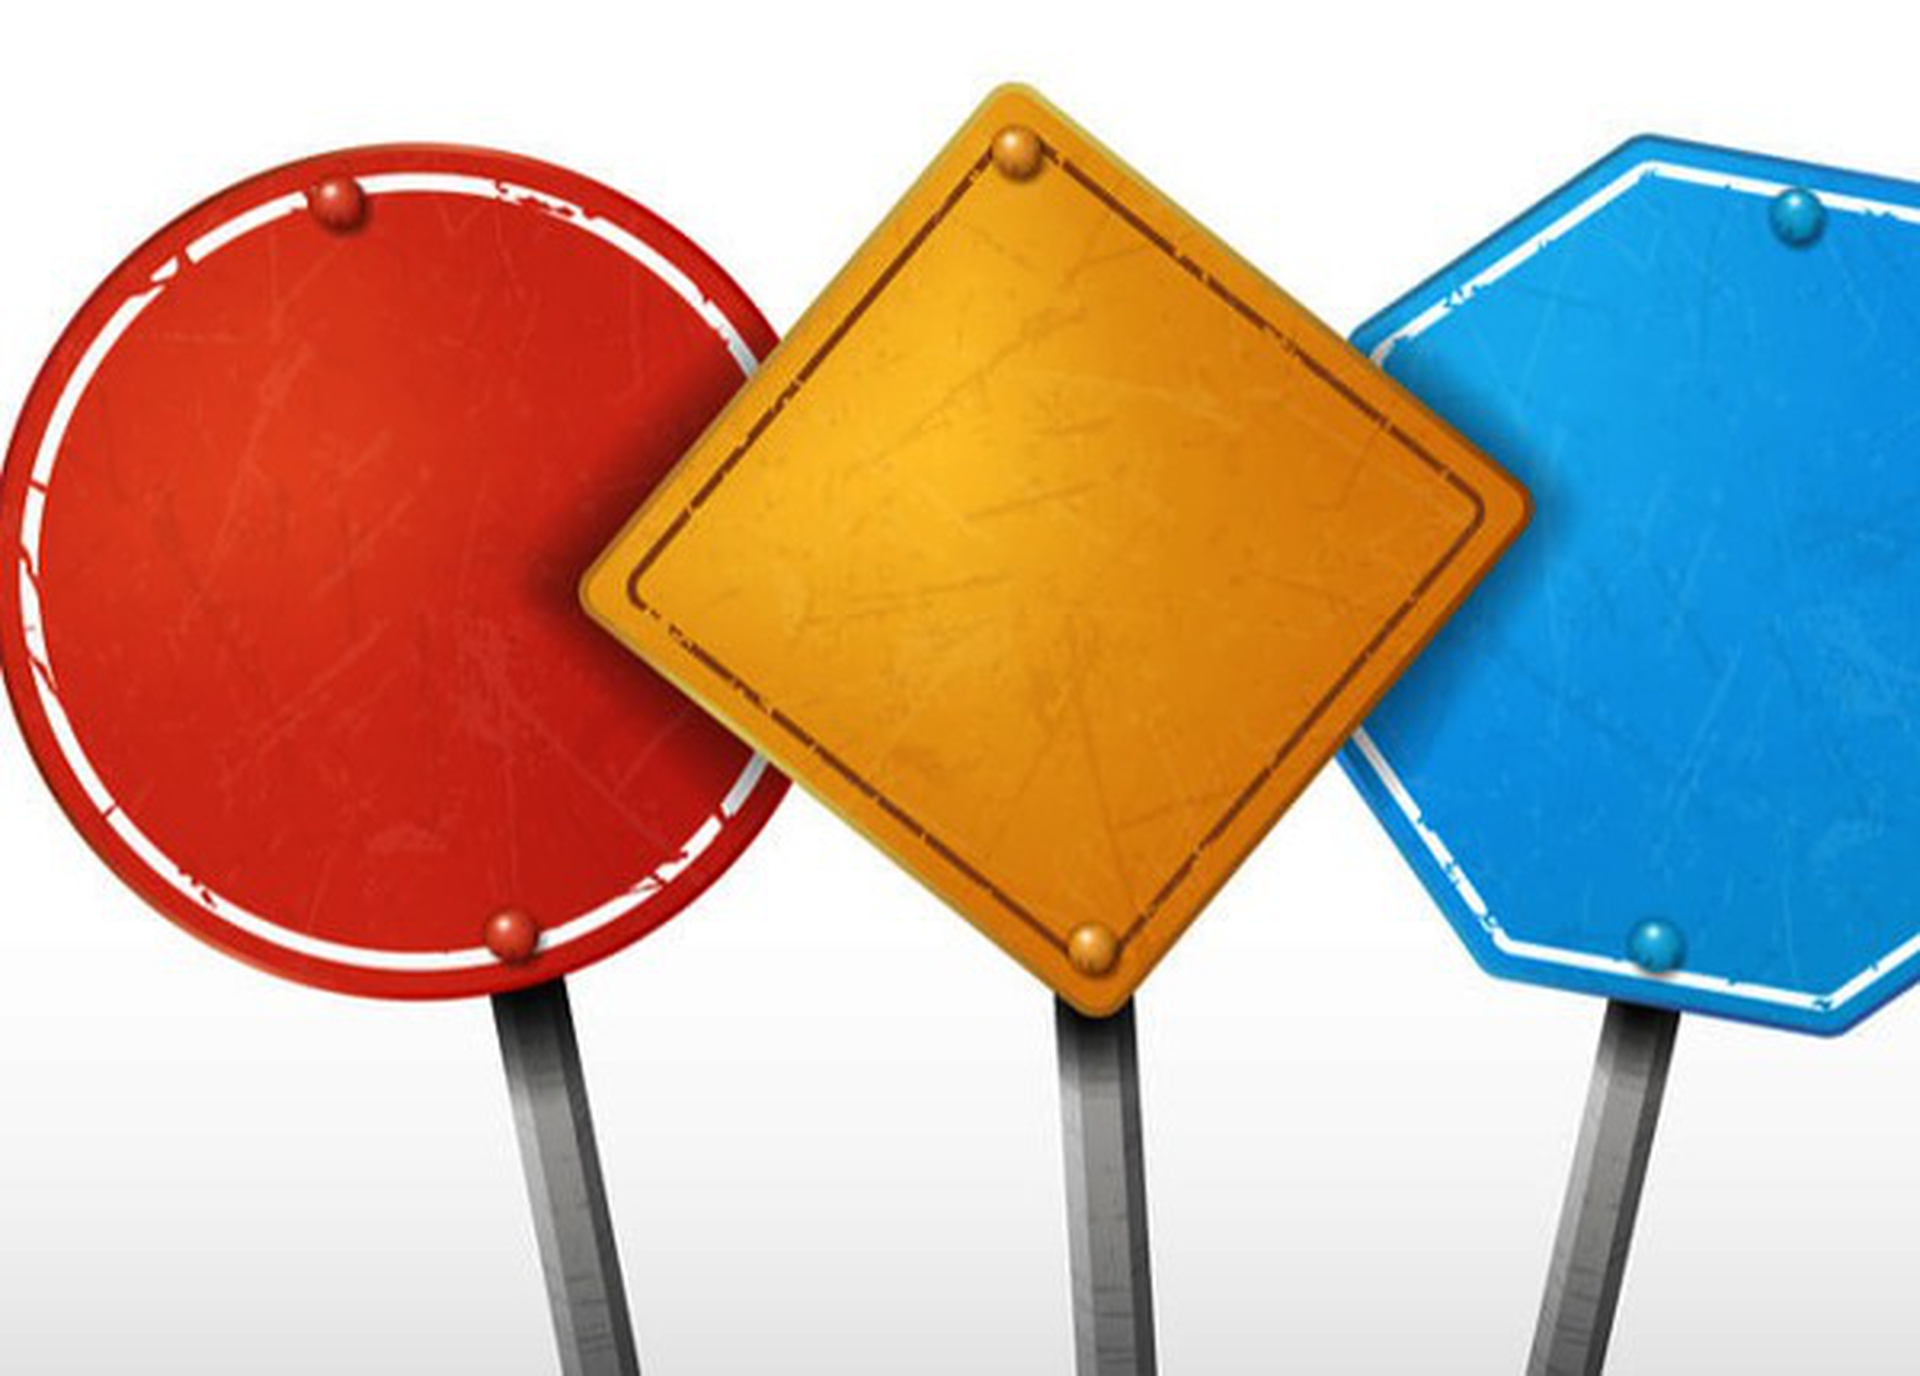 Recognizing Road Signs by Shape and Color